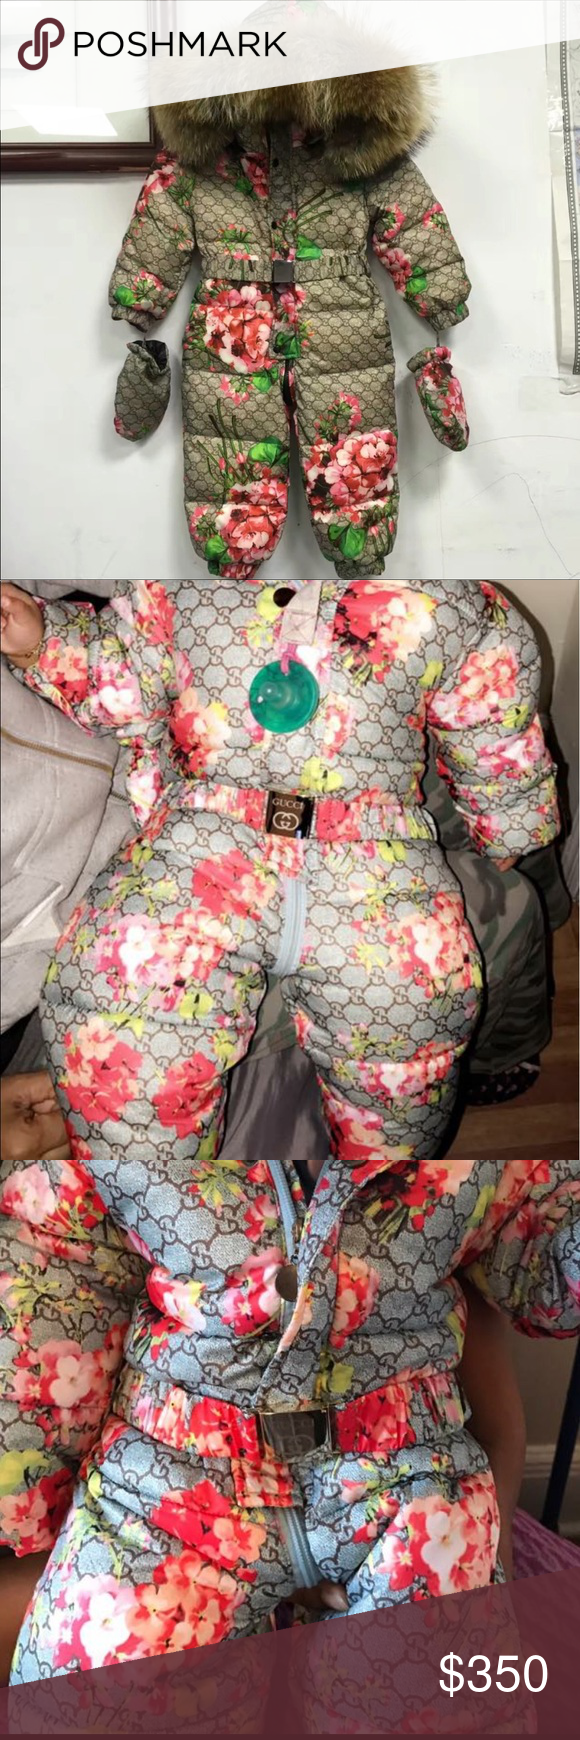 8efa3a9c3e41 GG Baby Snow Suit 🅿 🅿️only Gucci snowsuit size 4-6 months but ...